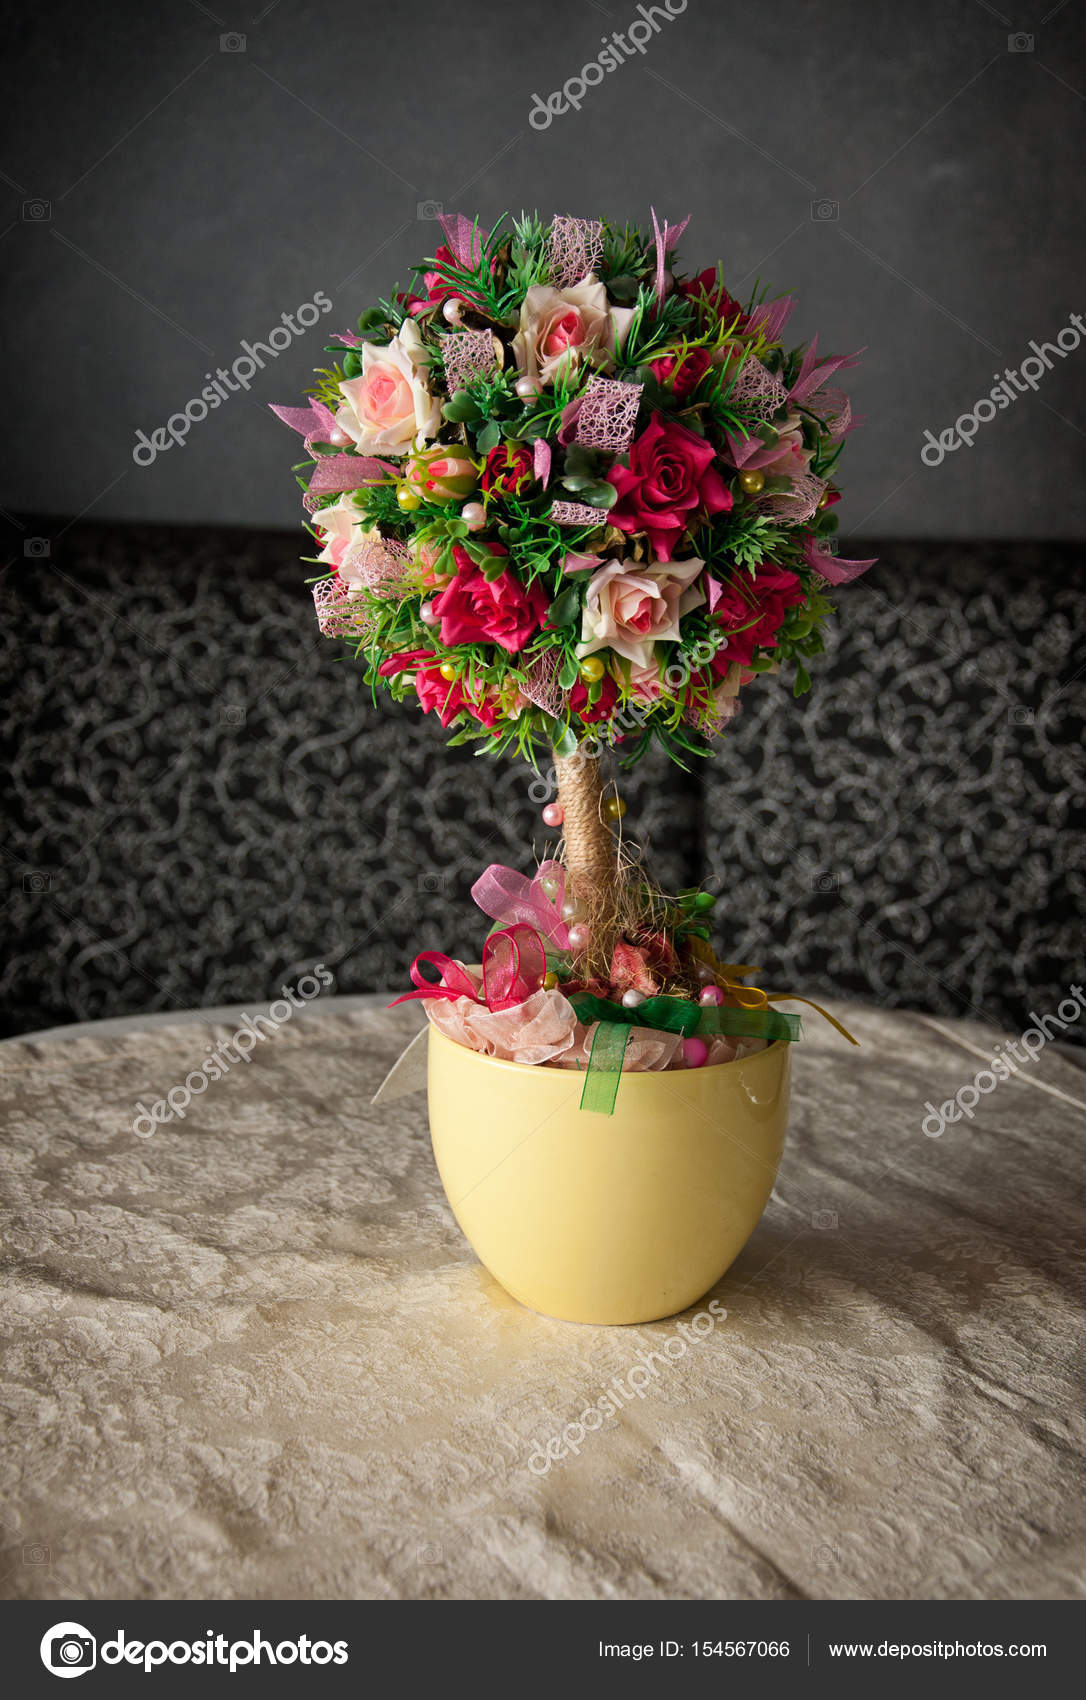 Gerani Artificiali Bouquet Di Fiori Artificiali Foto Stock Nataly0288dp 154567066